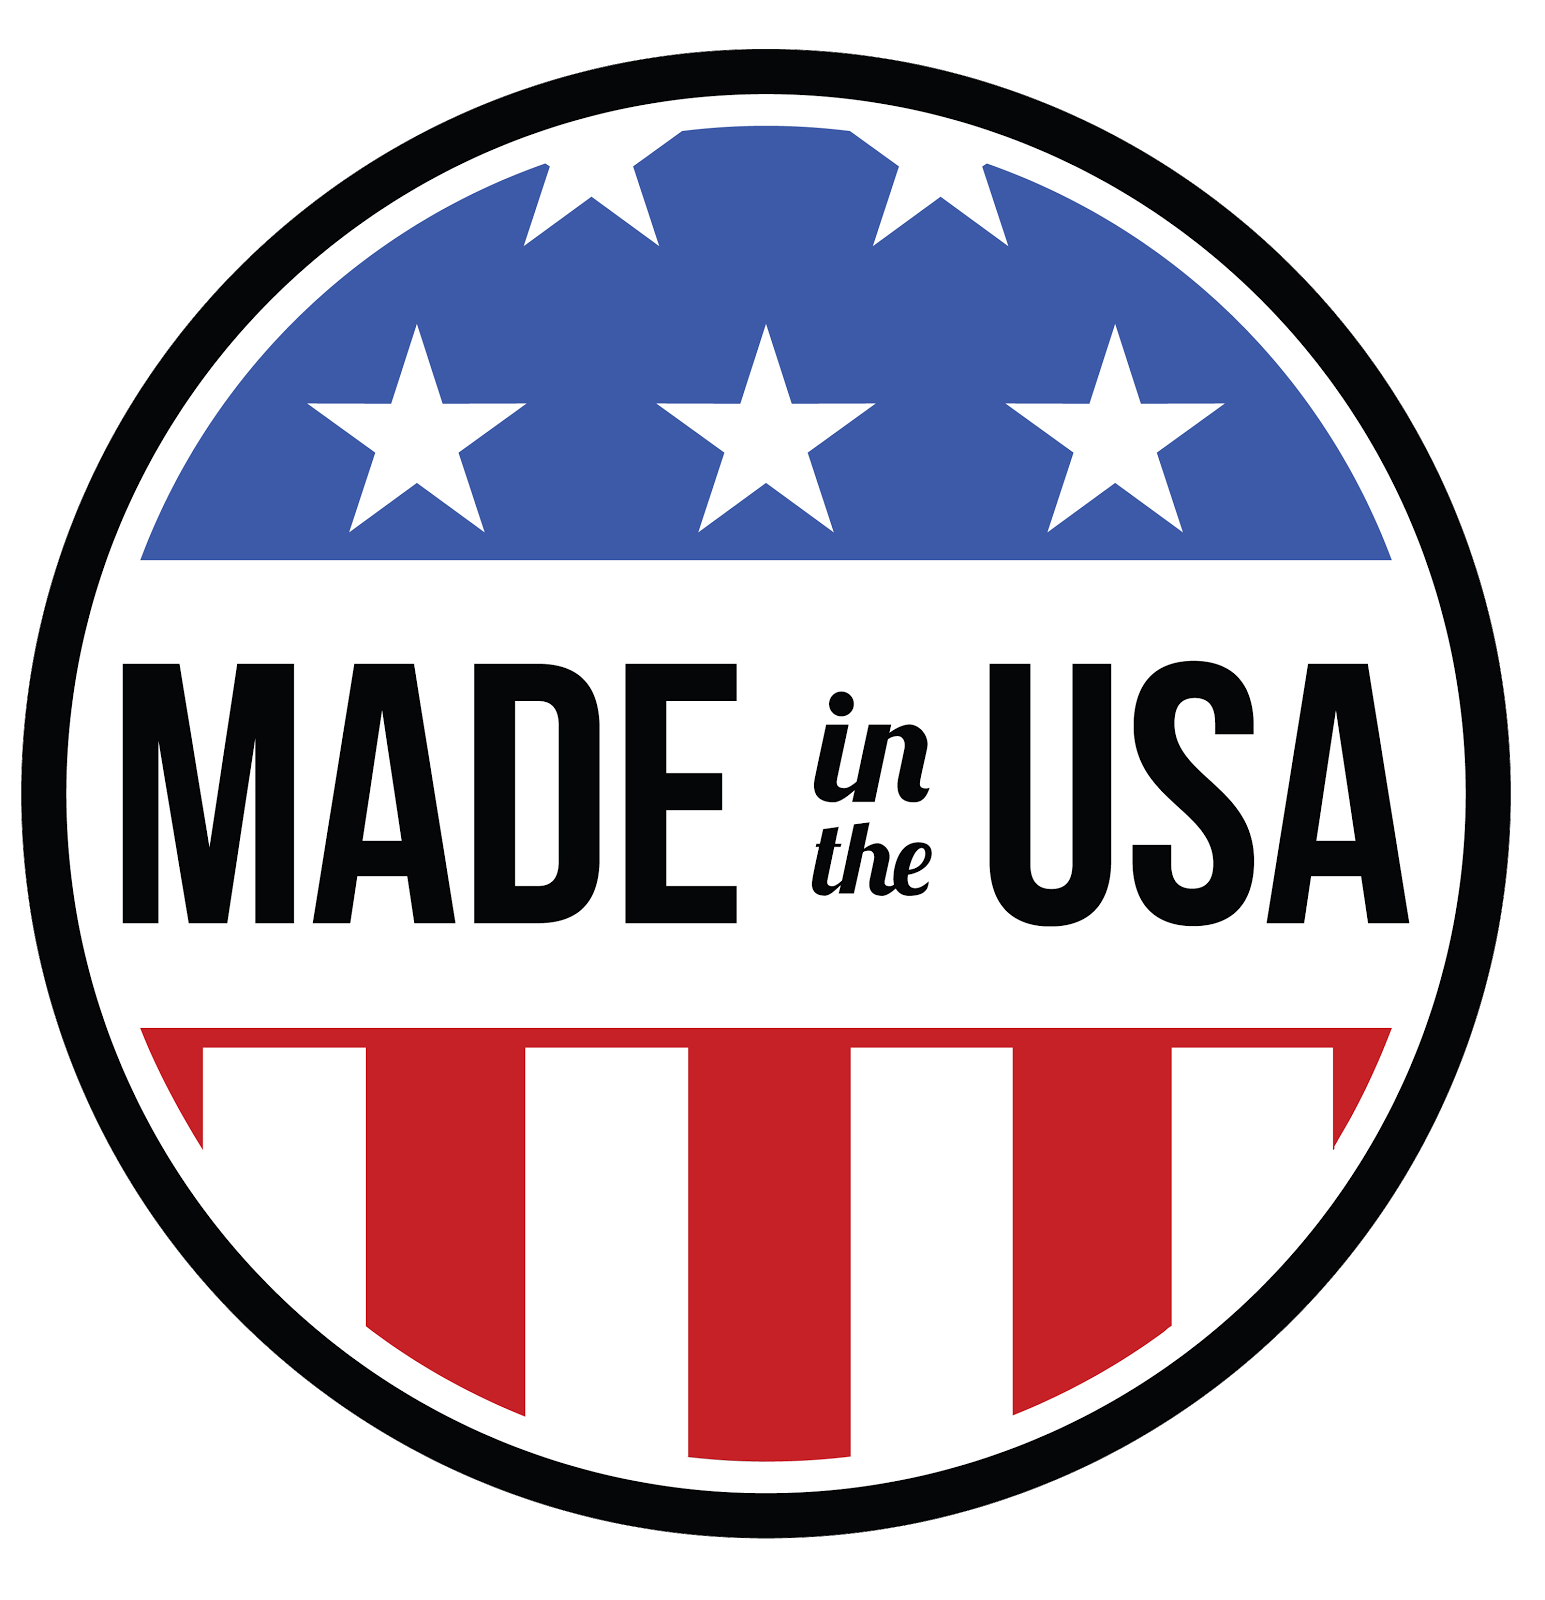 Made-in-usa-by-no-limit